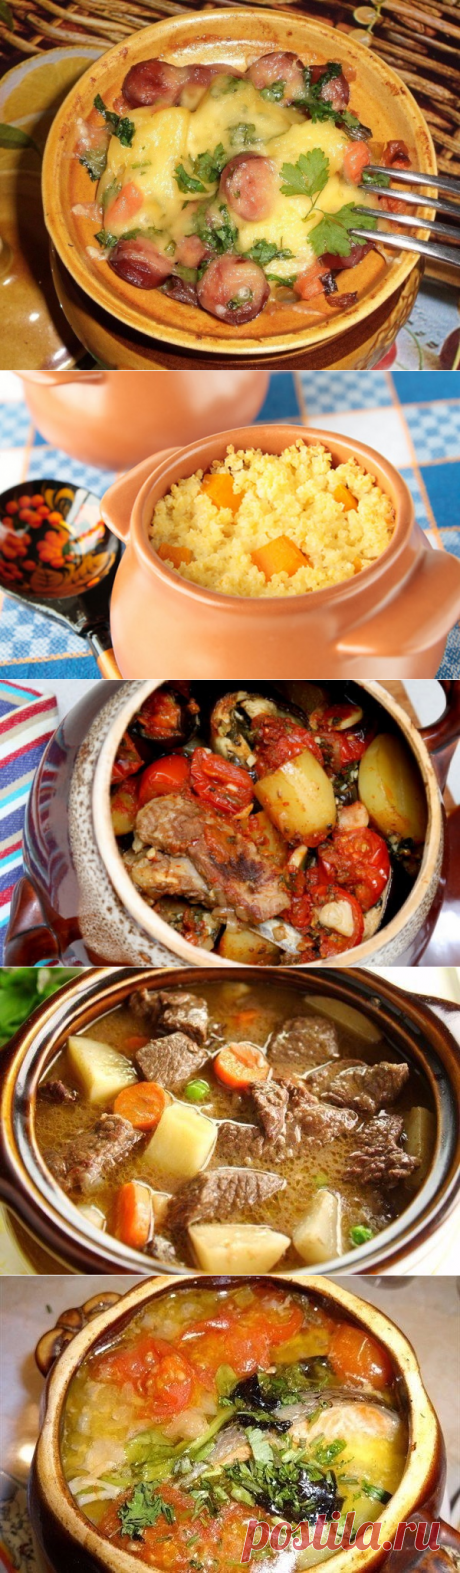 ASTOUNDING DISHES IN POTS: TOP-10 RECIPES